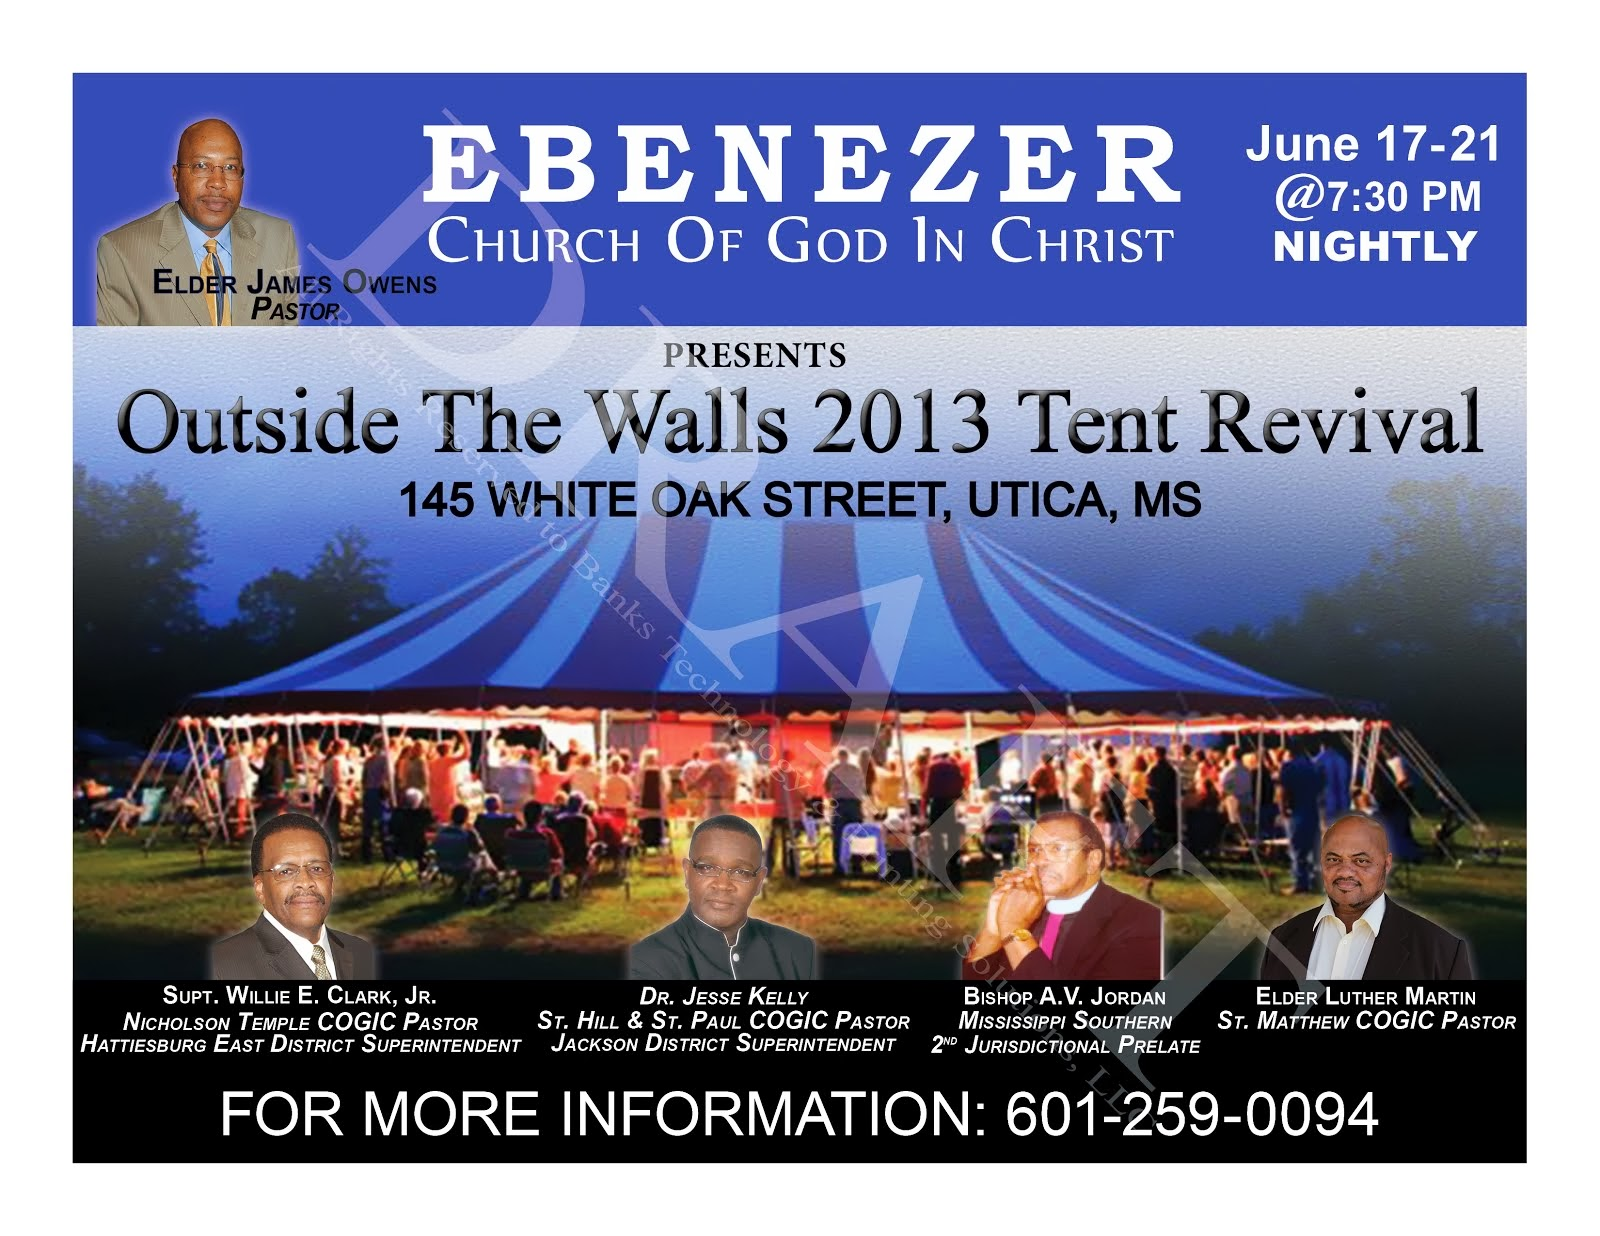 ebenezer tent revival in utica ms mississippi southern second ebenezer tent revival in utica ms